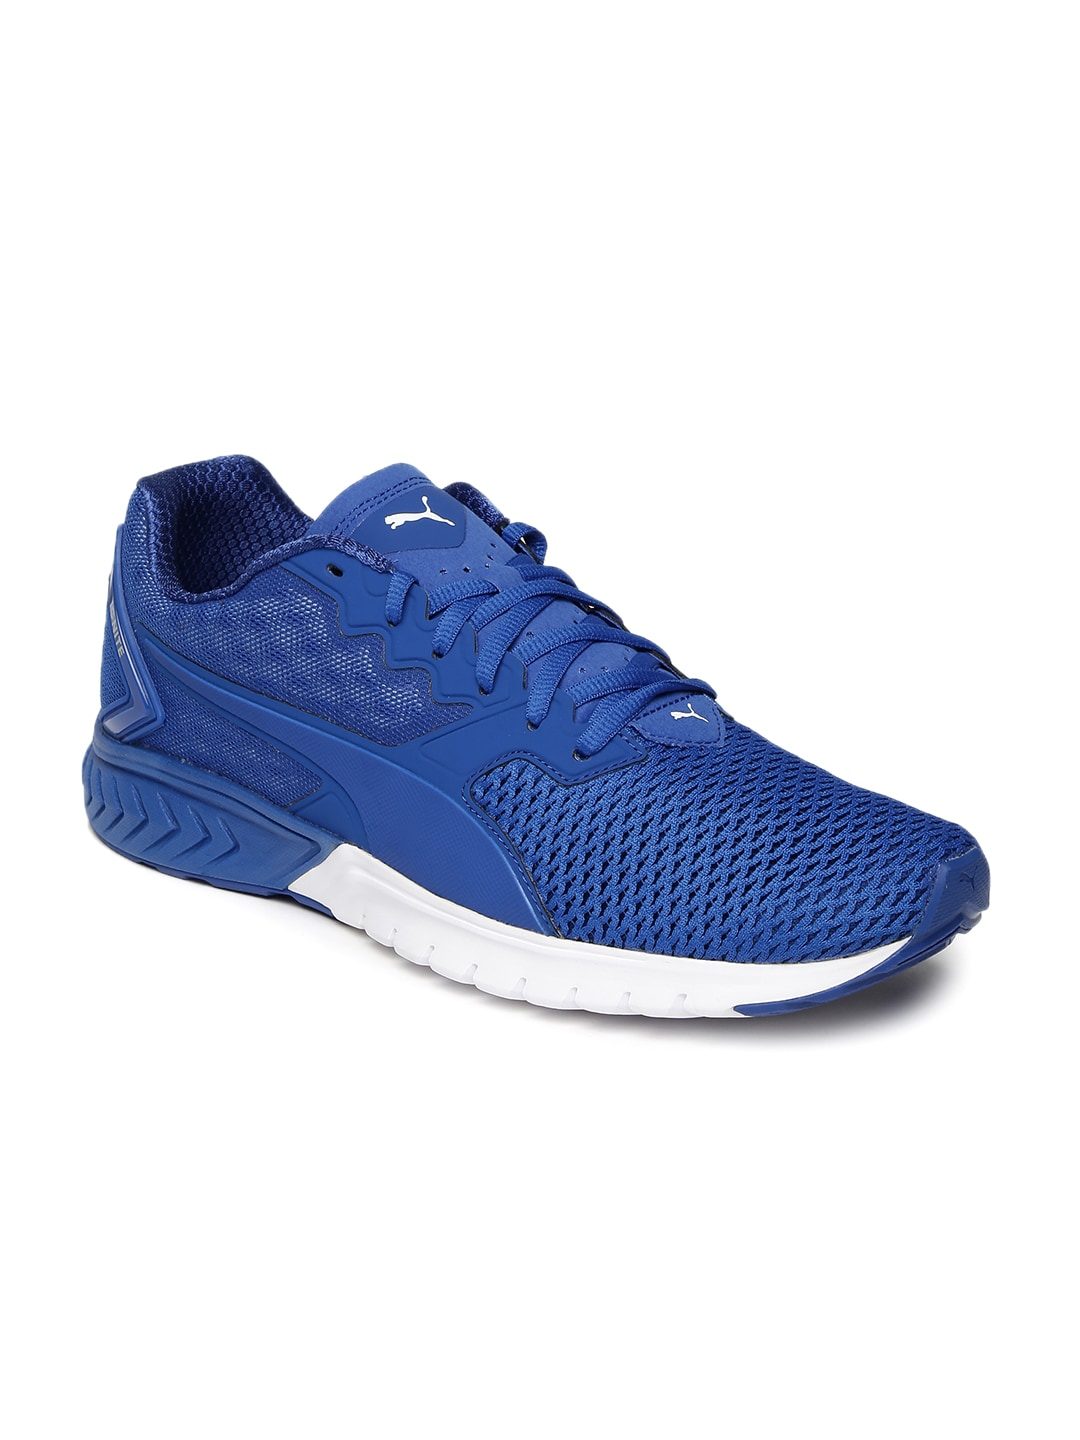 9612d13eafe Puma Sports Shoes